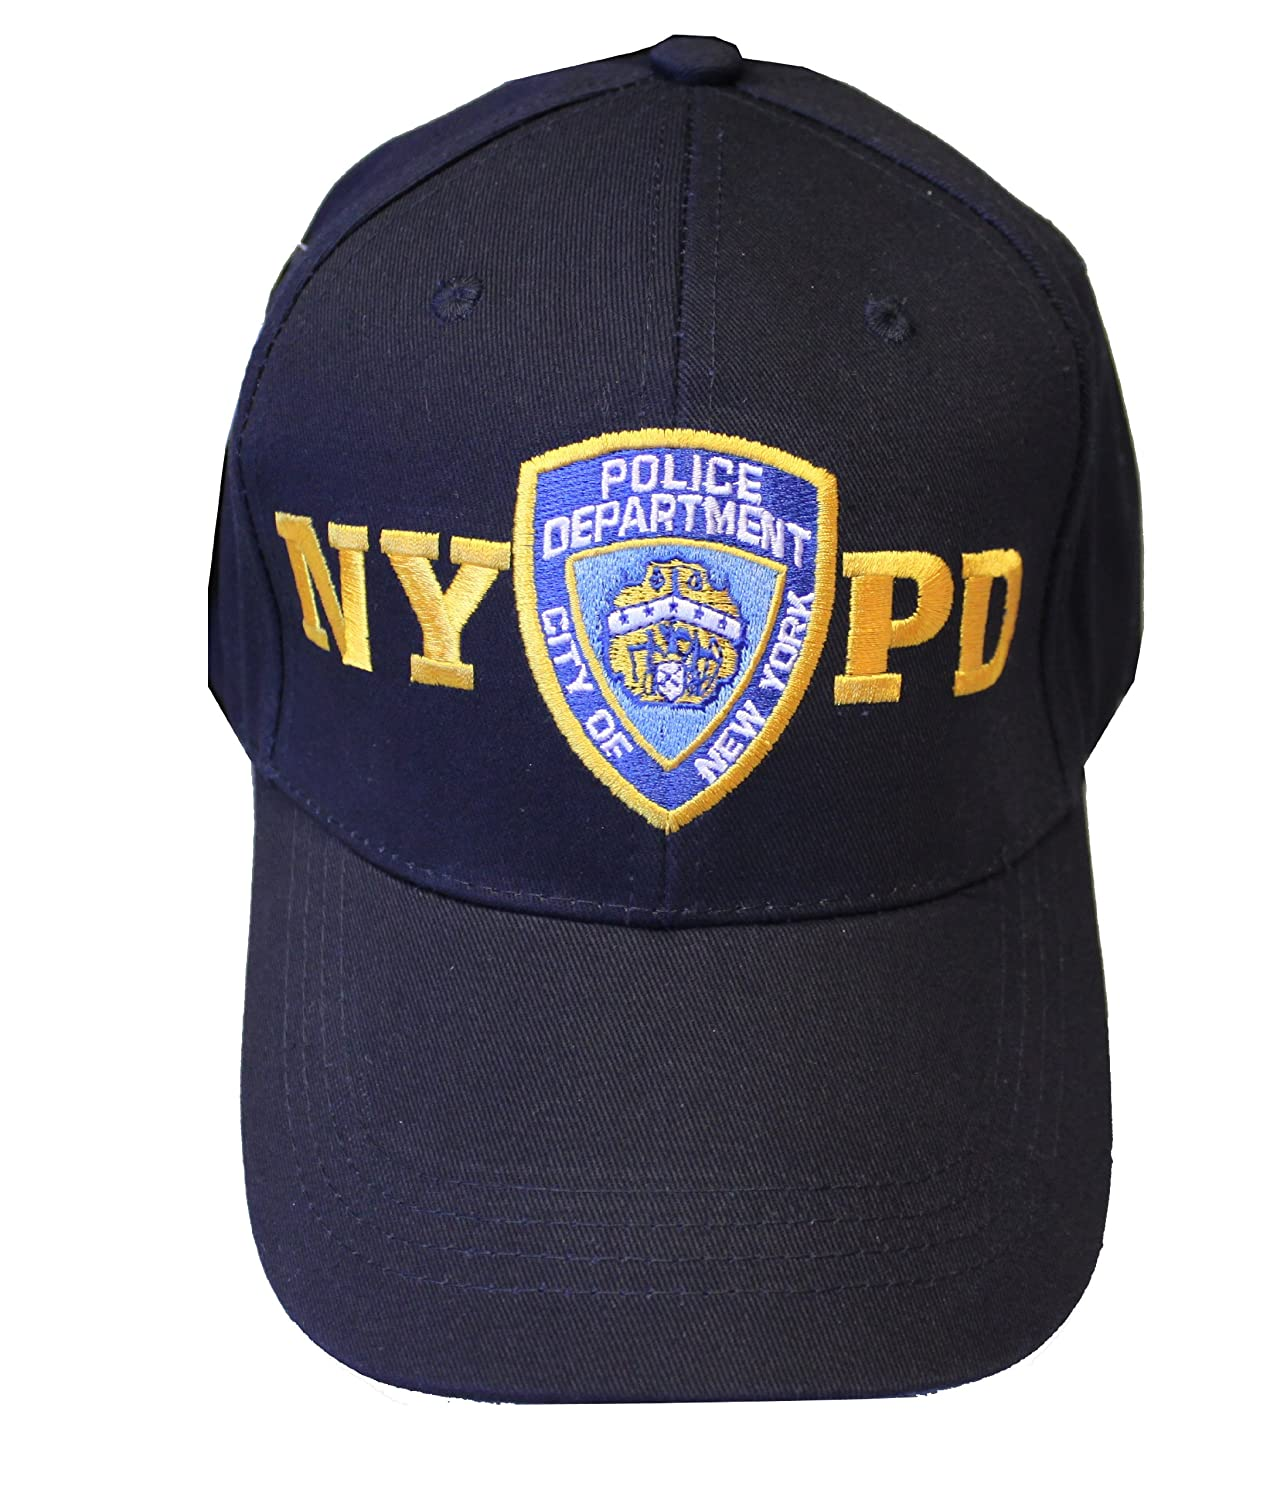 NYPD Junior Kids Baseball Hat Police Department of New York Navy Blue Boys 98302